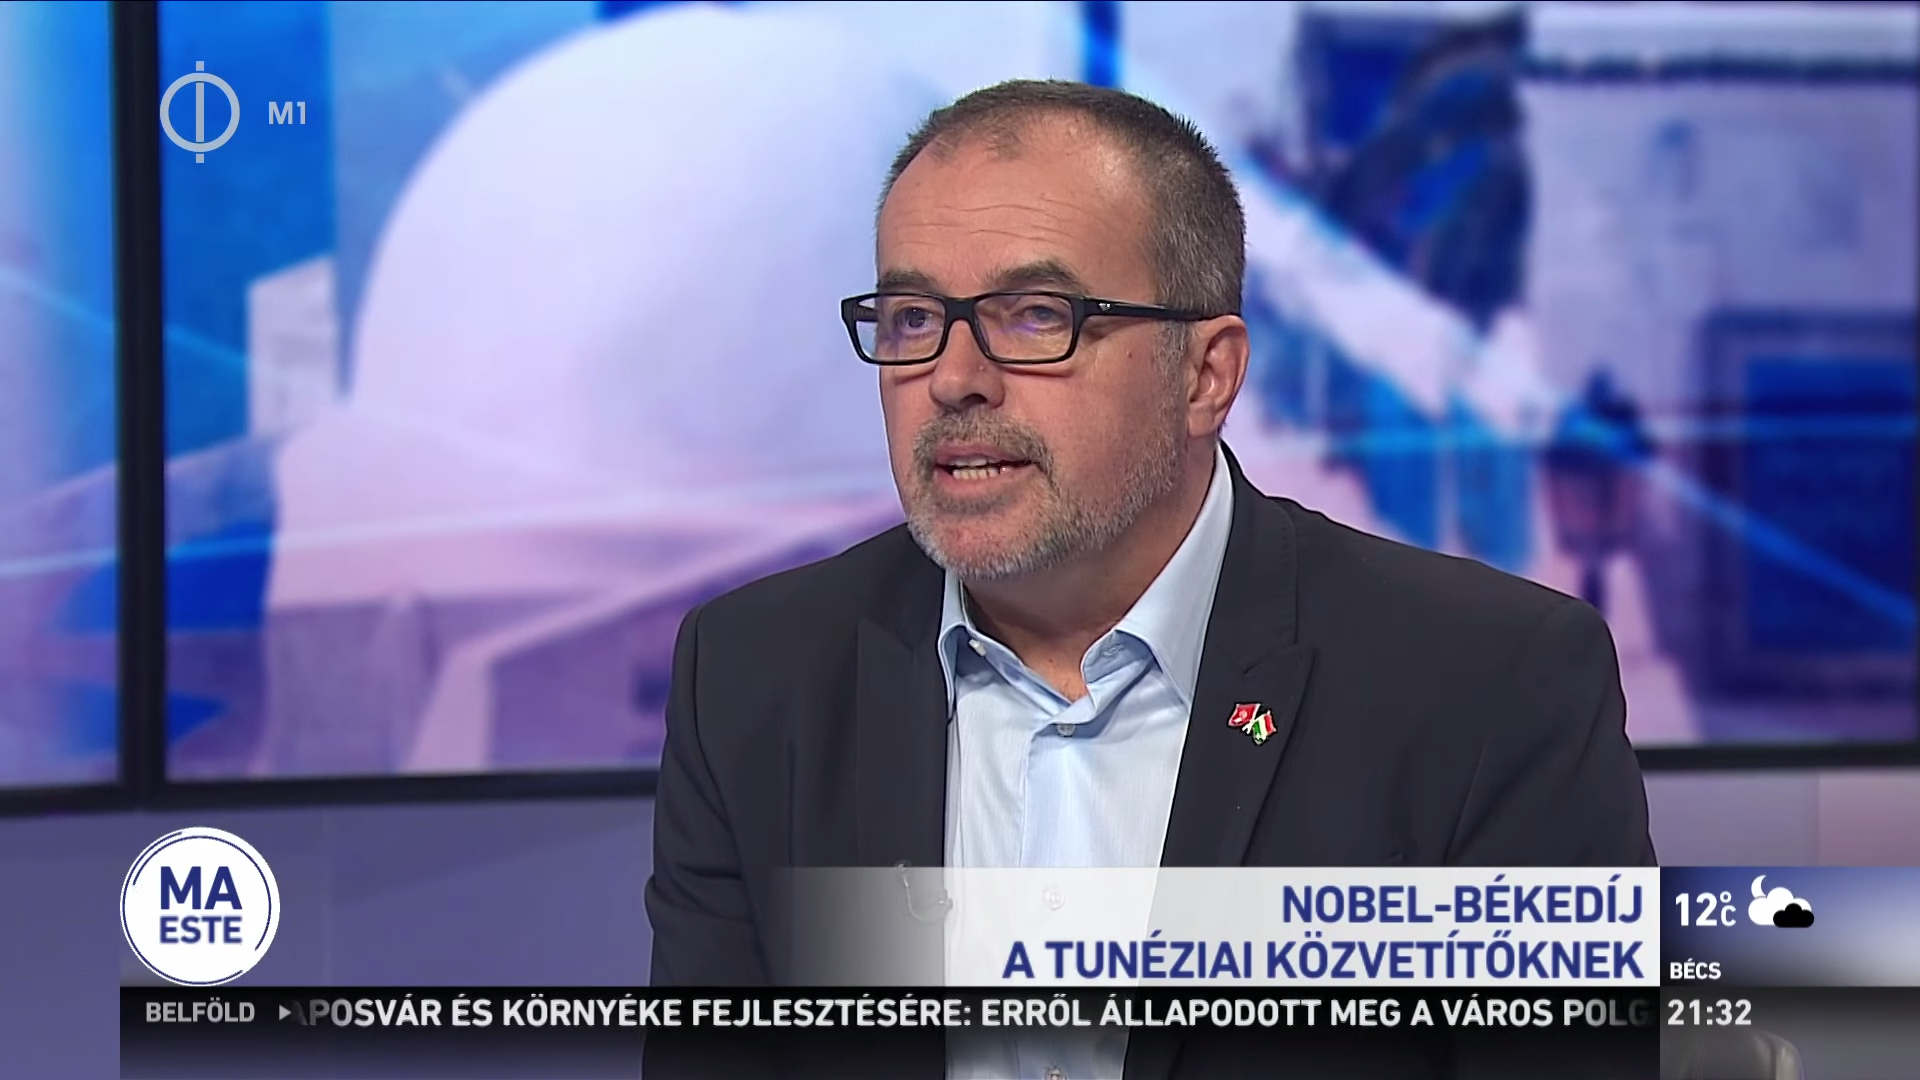 African-Hungarian Union: Tunisia can be an encouragement for Africa